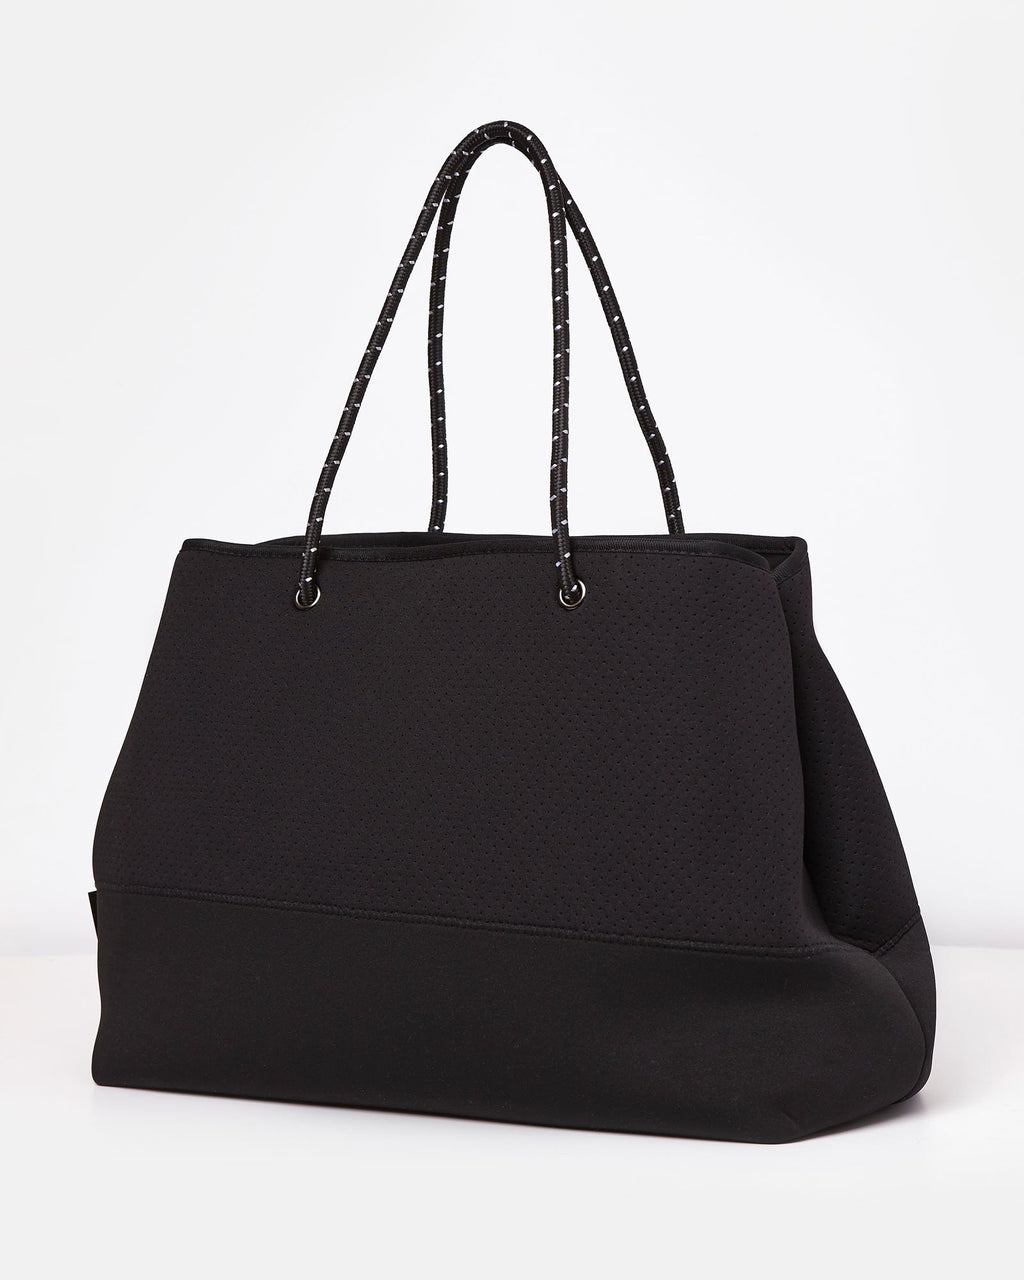 Miz Casa & Co Ivy Neoprene Tote Bag Black-Miz Casa & Co-Nomads Cove